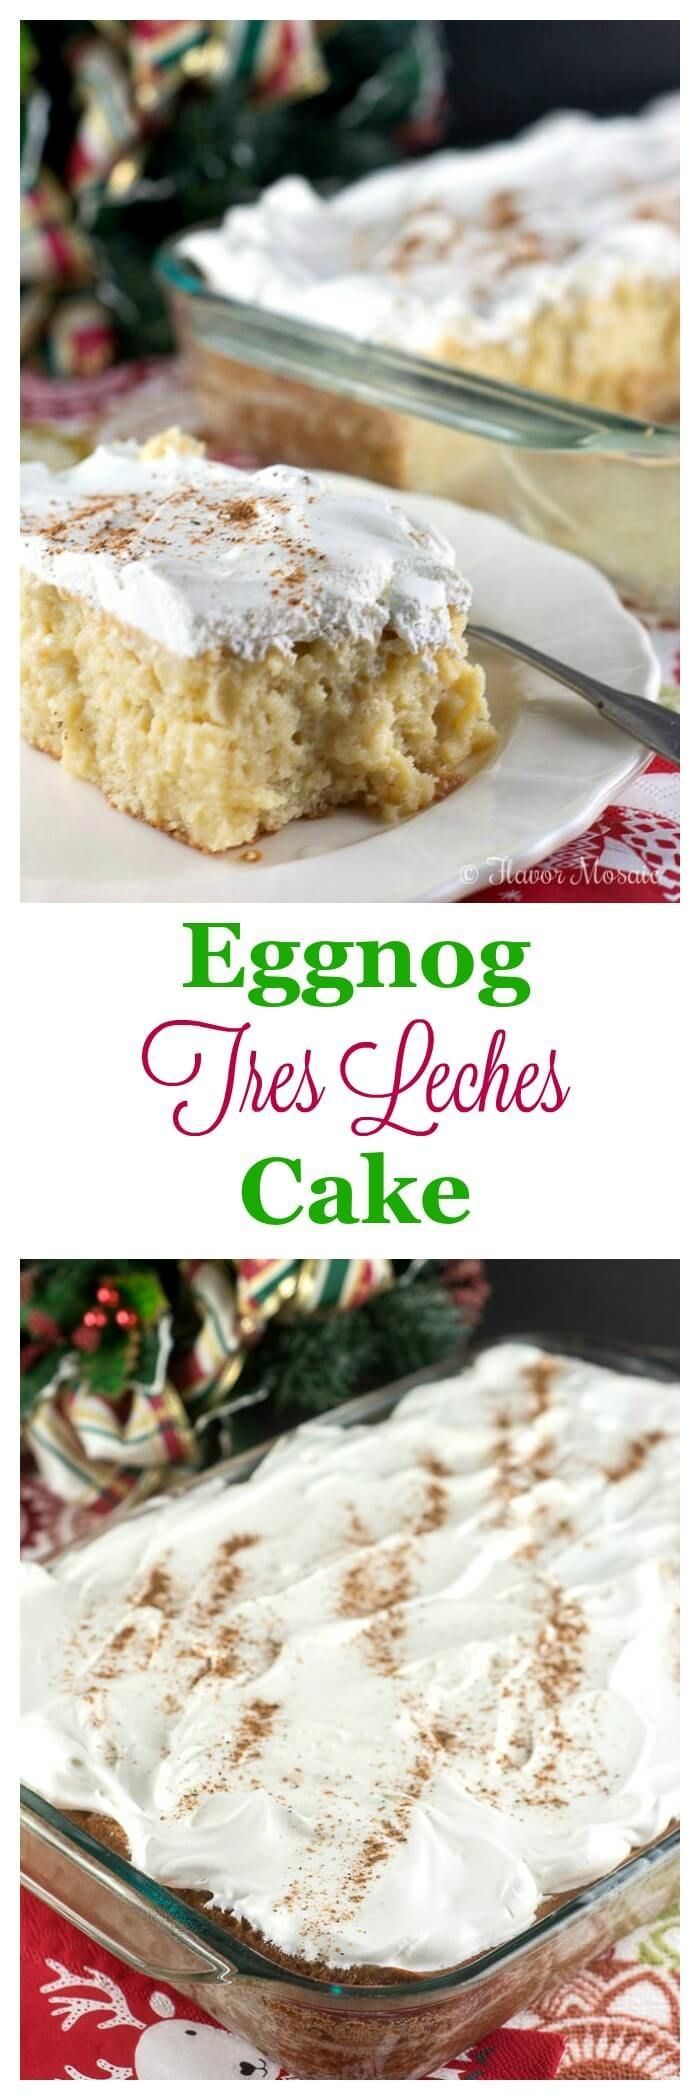 This sweet, moist, rich Eggnog Tres Leches Cake recipe makes a unique ...